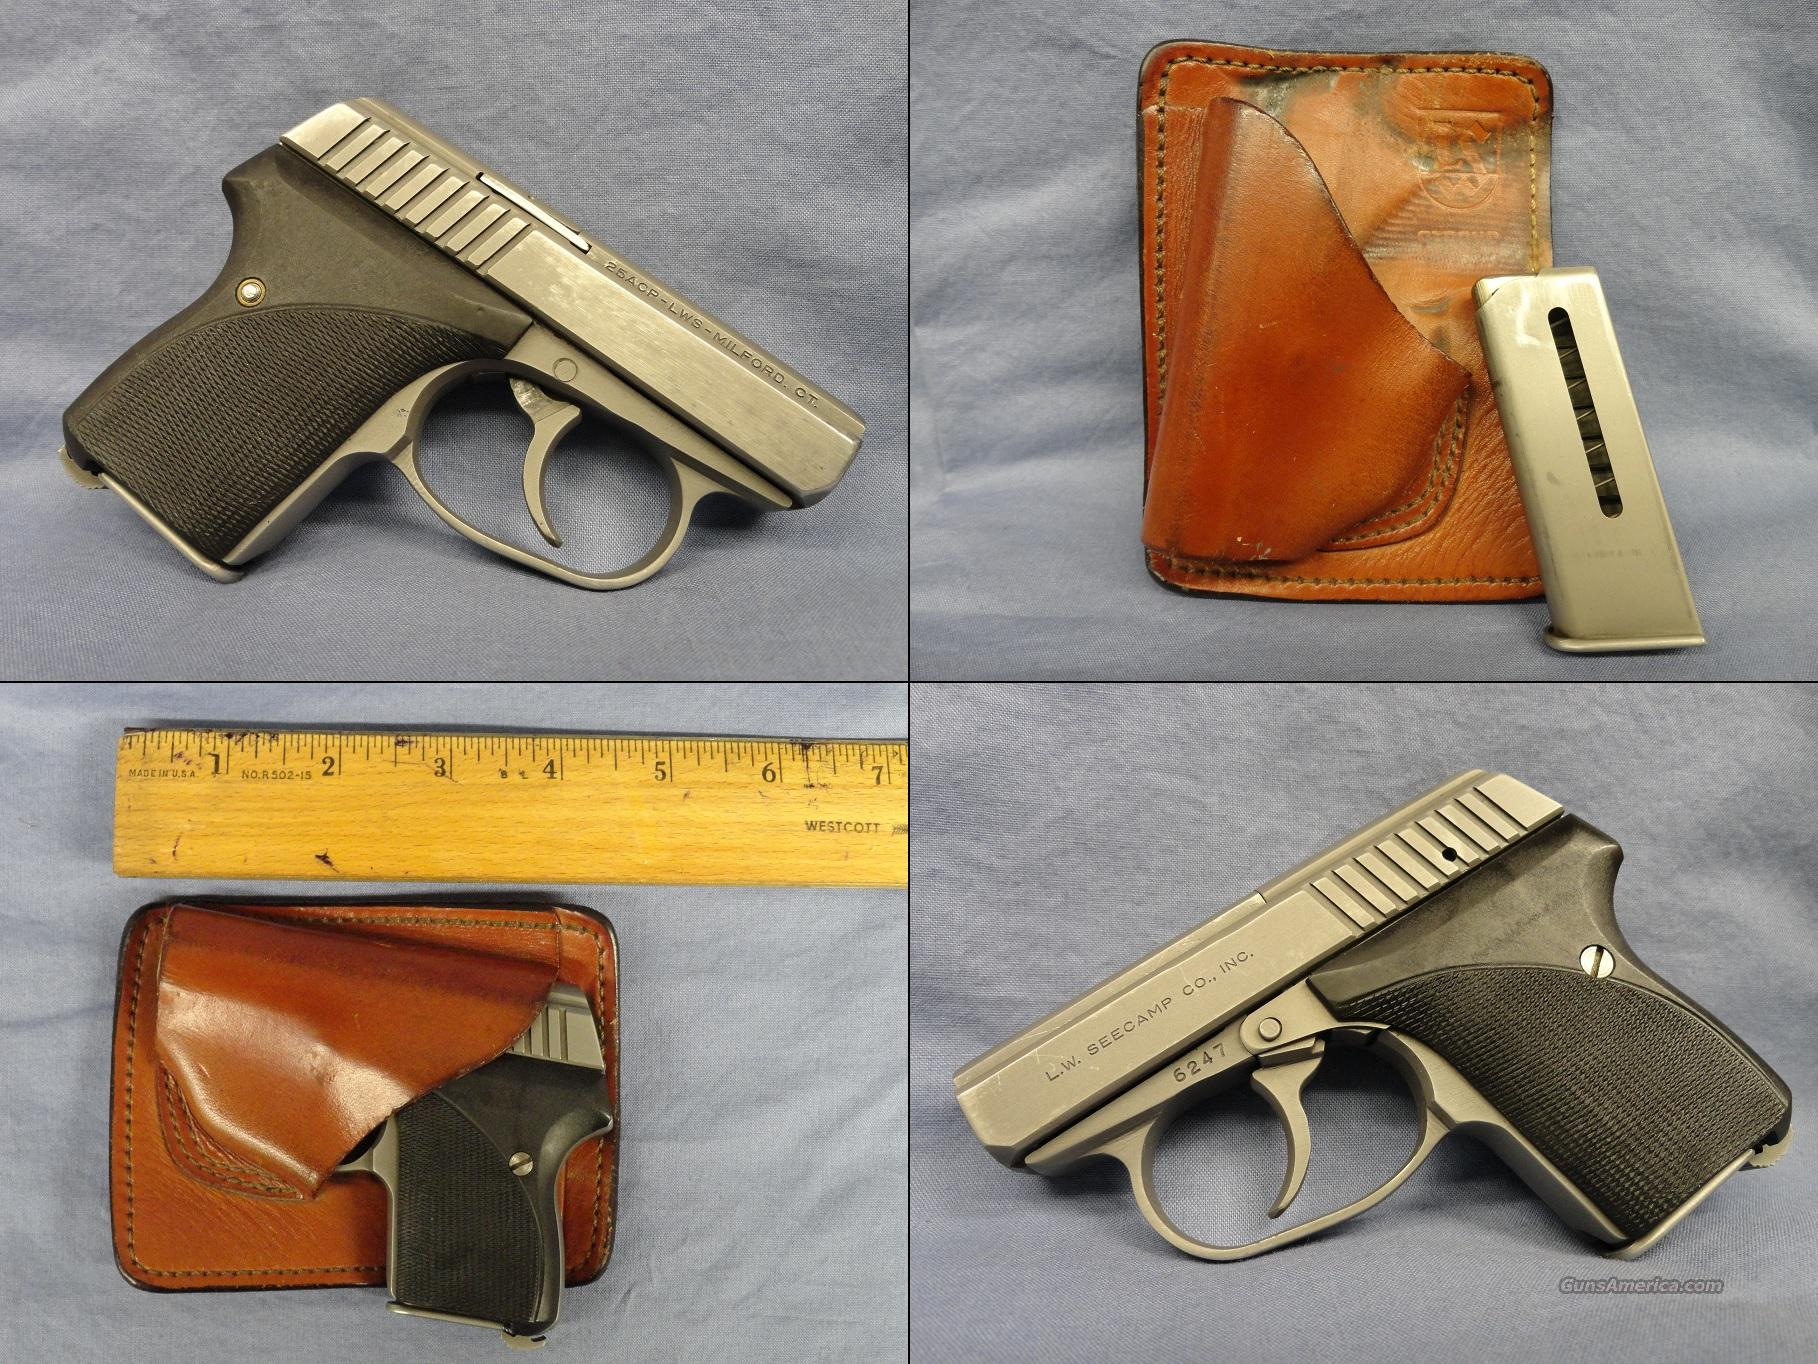 Seecamp .25ACP D/A only Pocket pistol with LWS Leather holster  Guns > Pistols > Seecamp Pistols